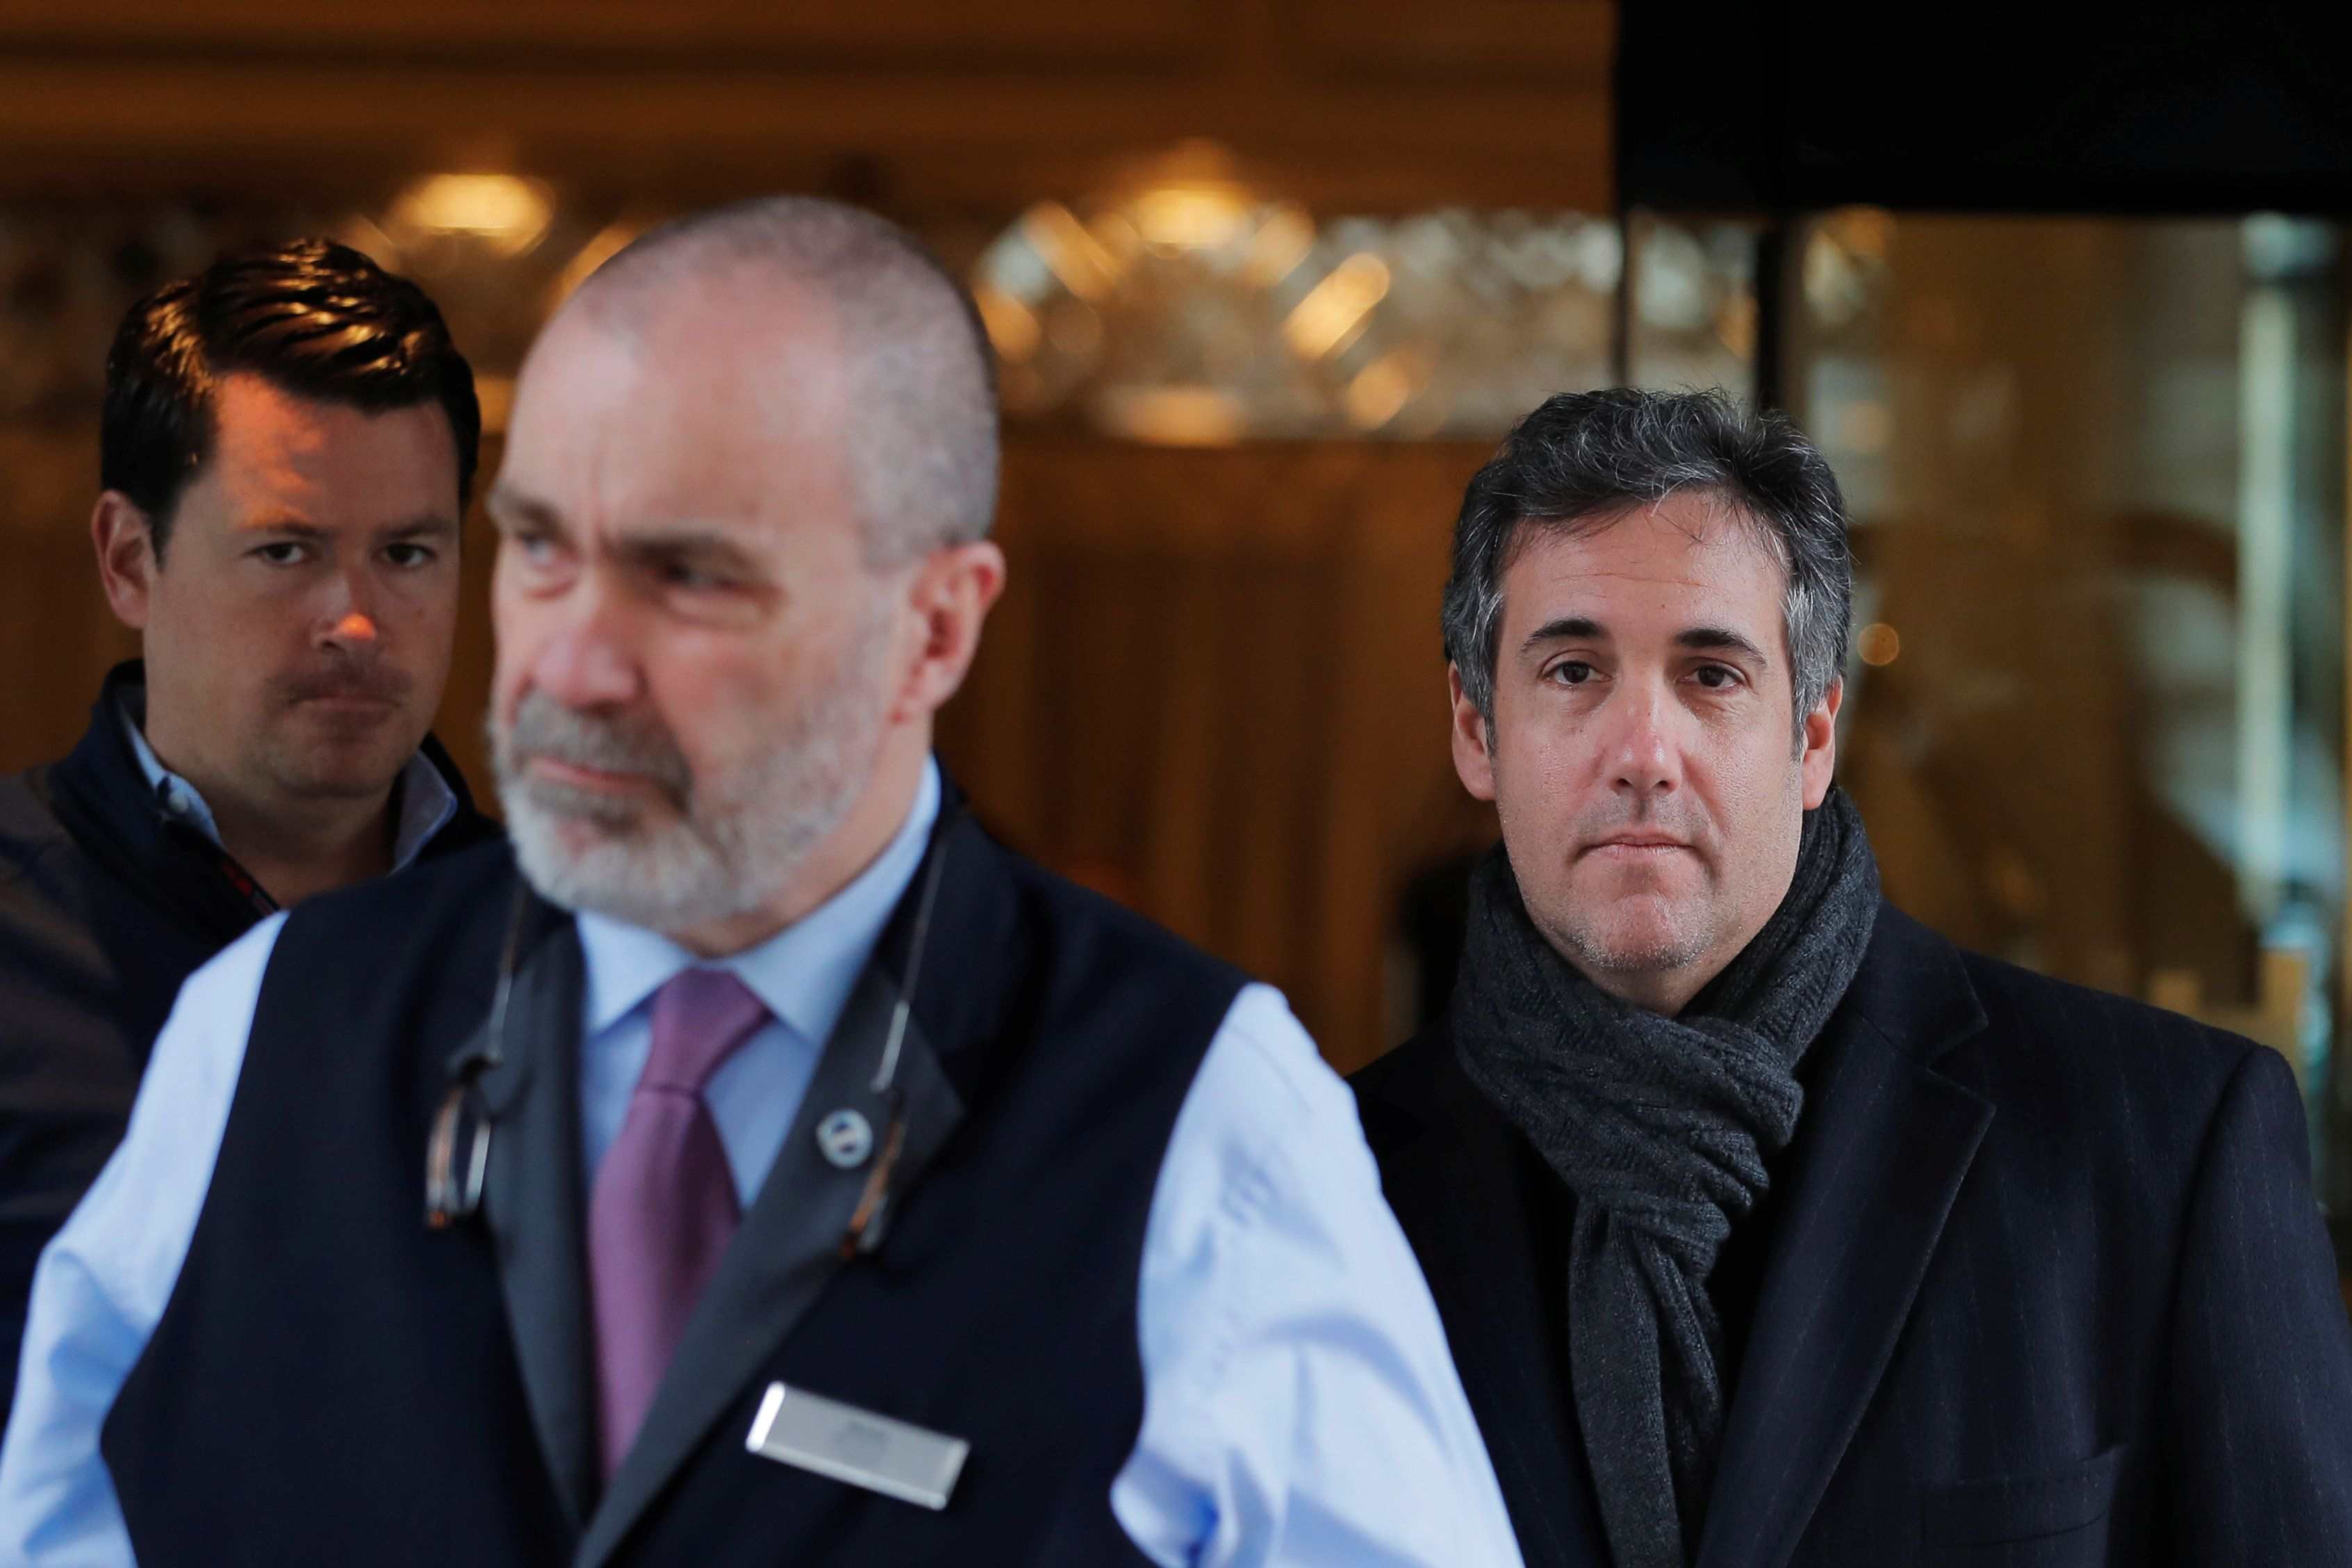 U.S. President Donald Trump's personal lawyer Michael Cohen exits a hotel in New York City, U.S., April 15, 2018.  REUTERS/Lucas Jackson